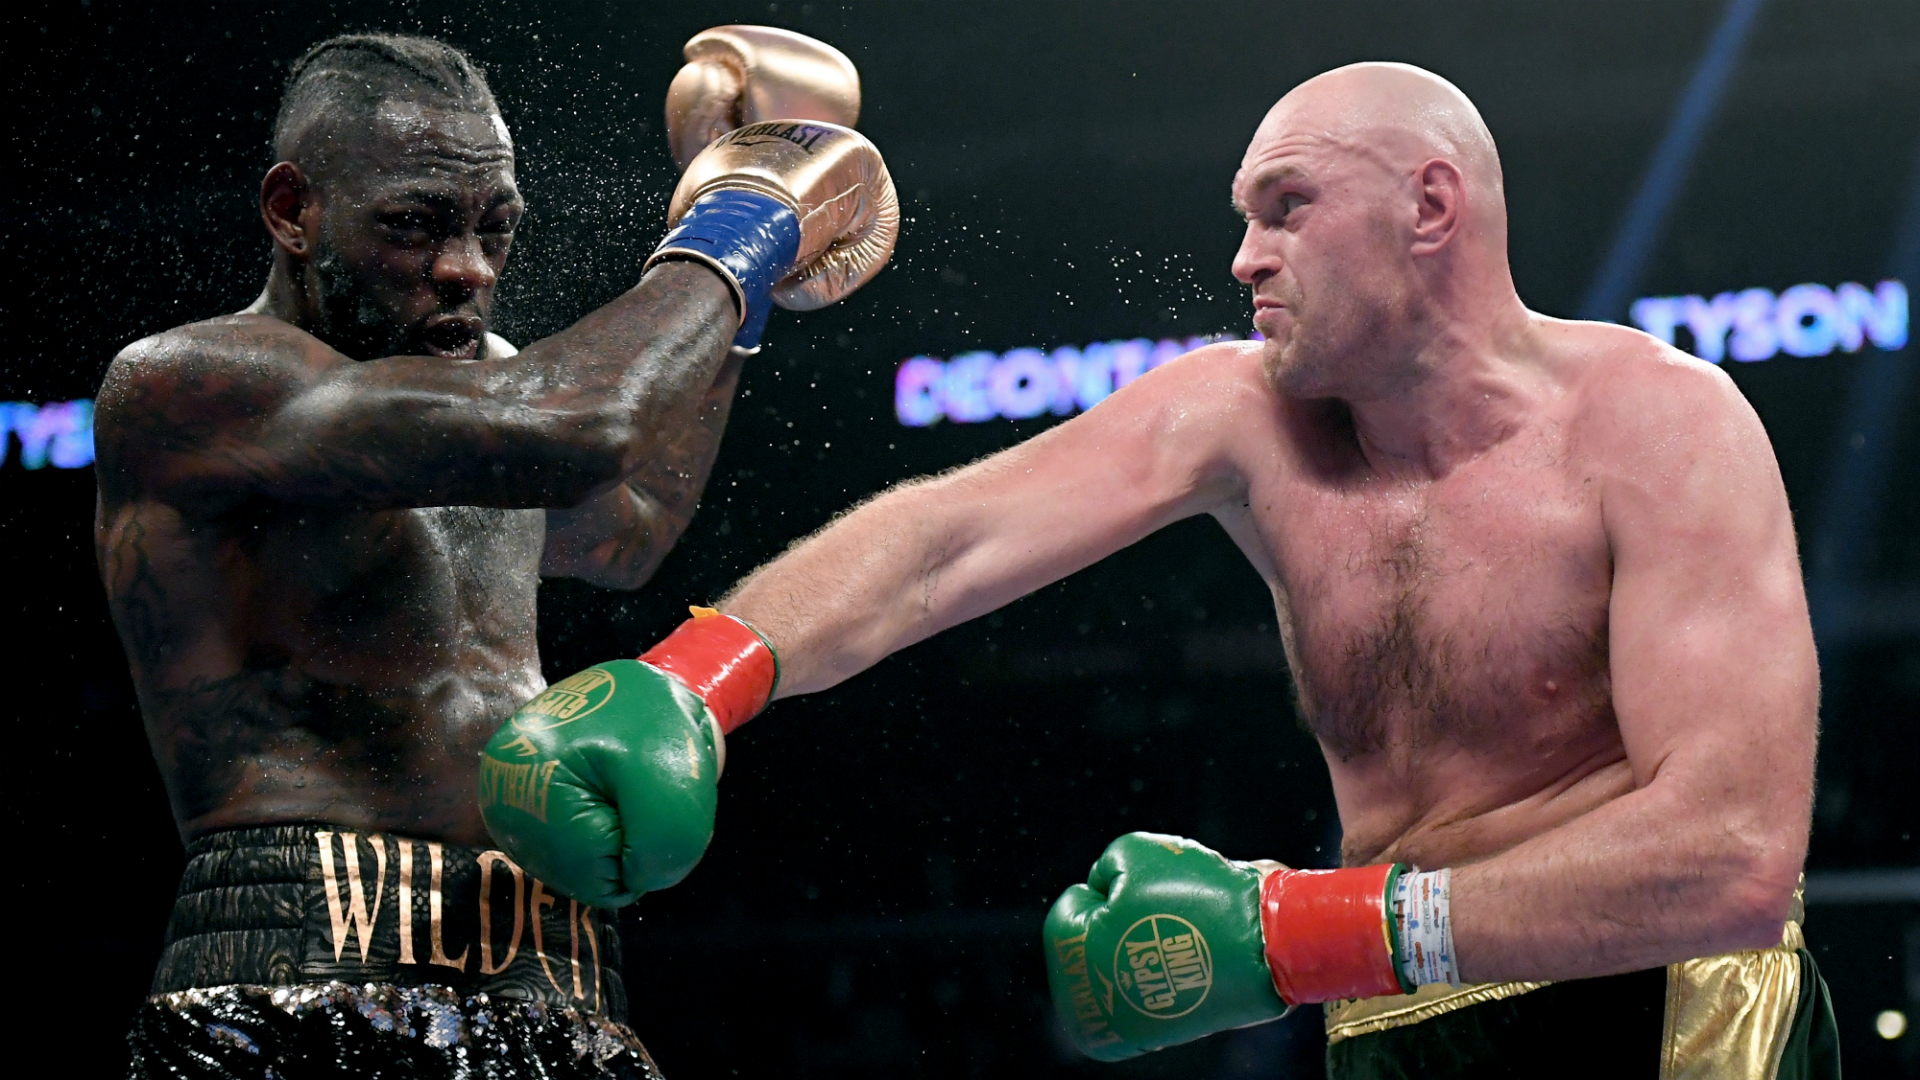 Tyson Fury expects Deontay Wilder rematch in March or April 2020